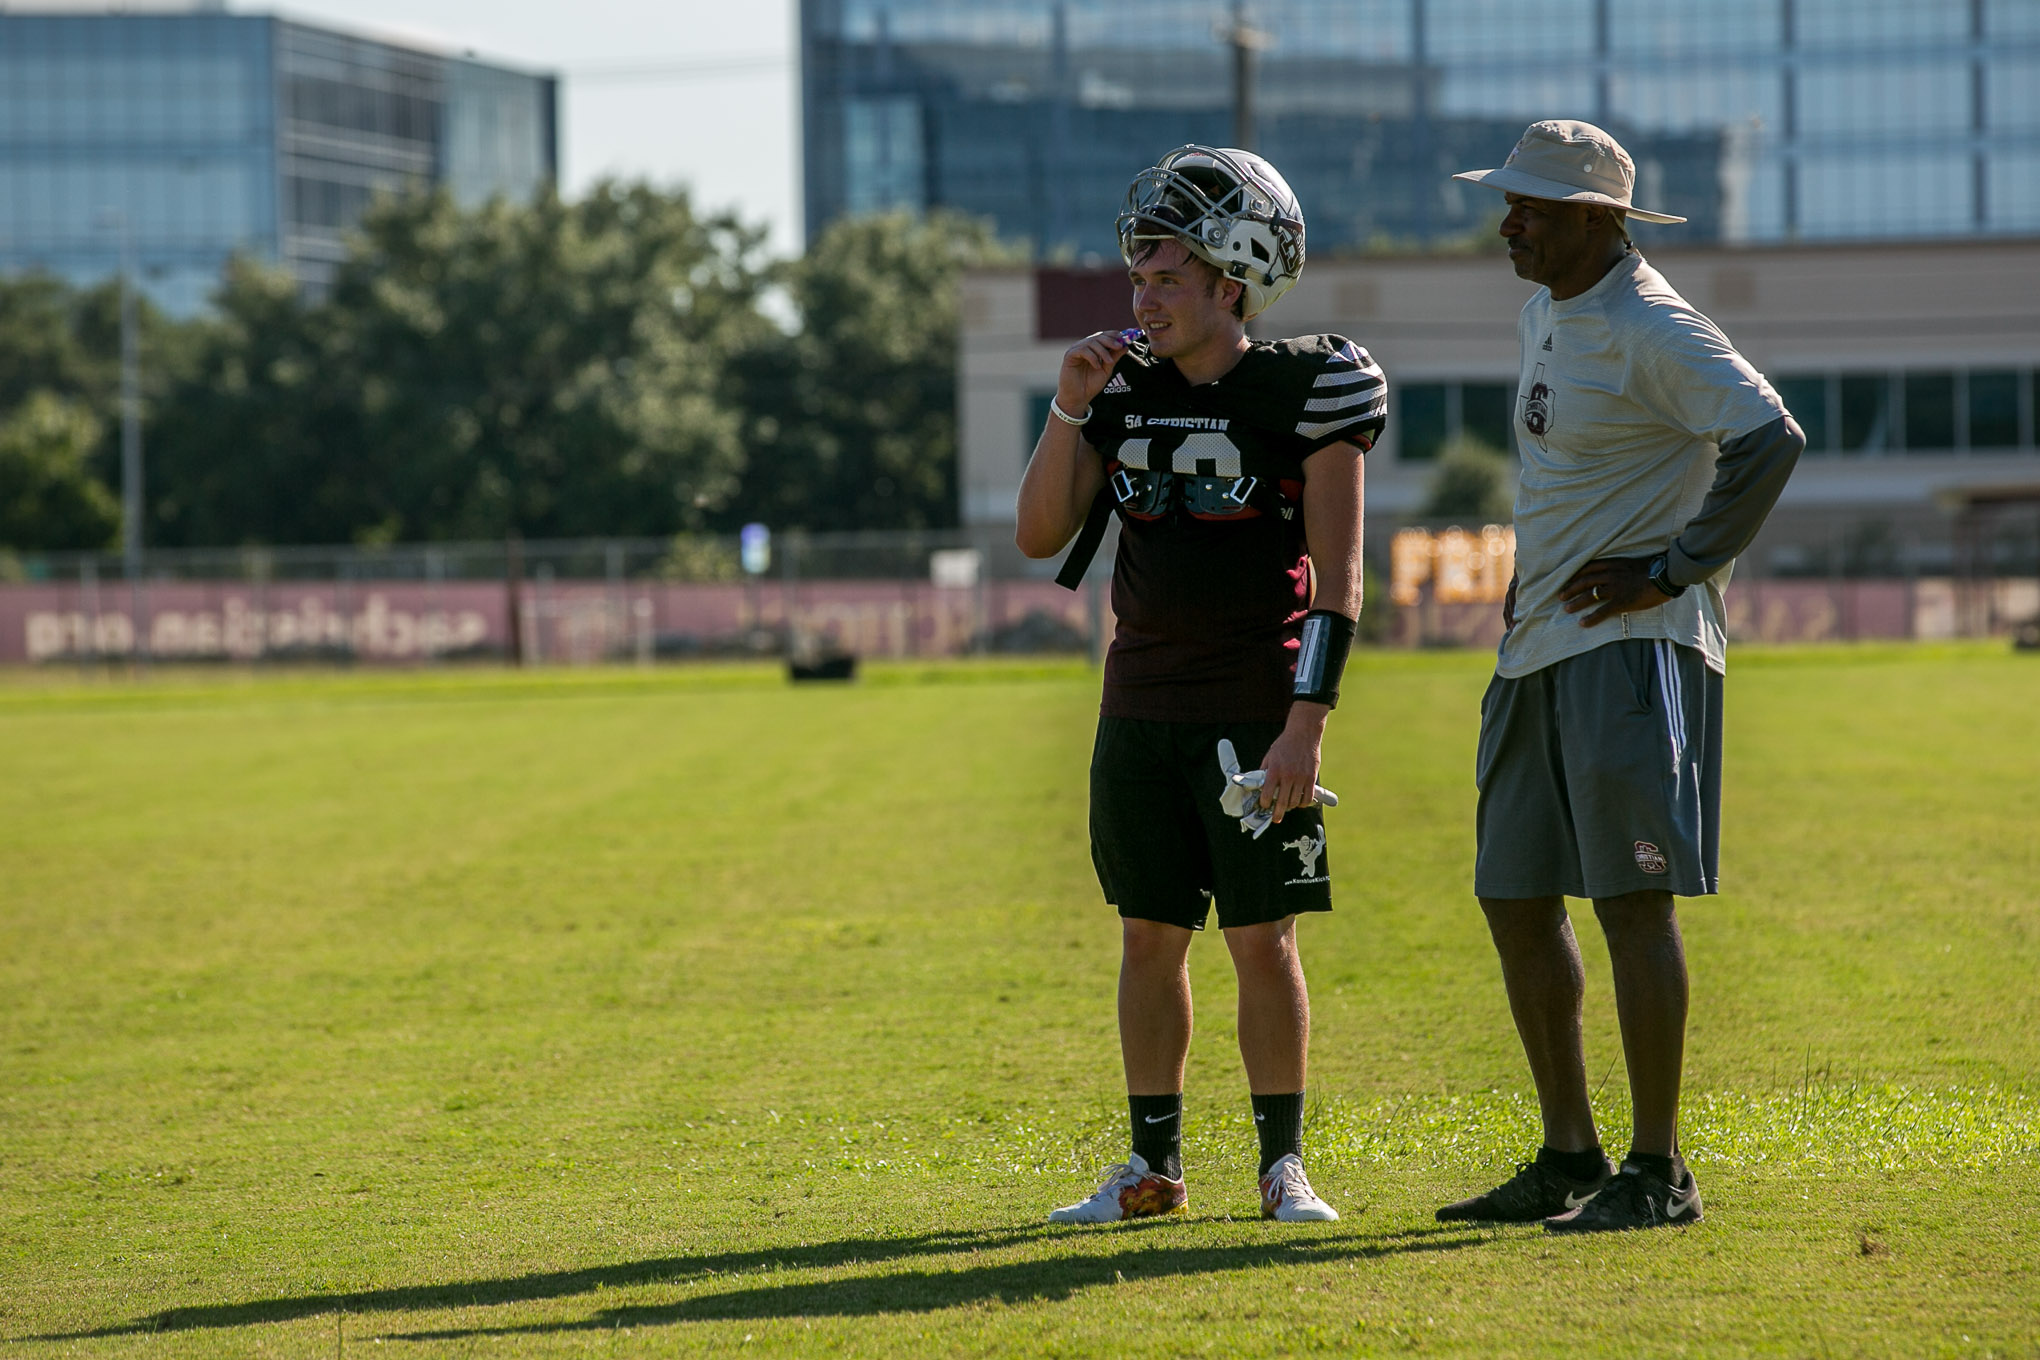 Former NFL wide receiver Henry Ellard works with a San Antonio Christian High School wide receiver during practice.